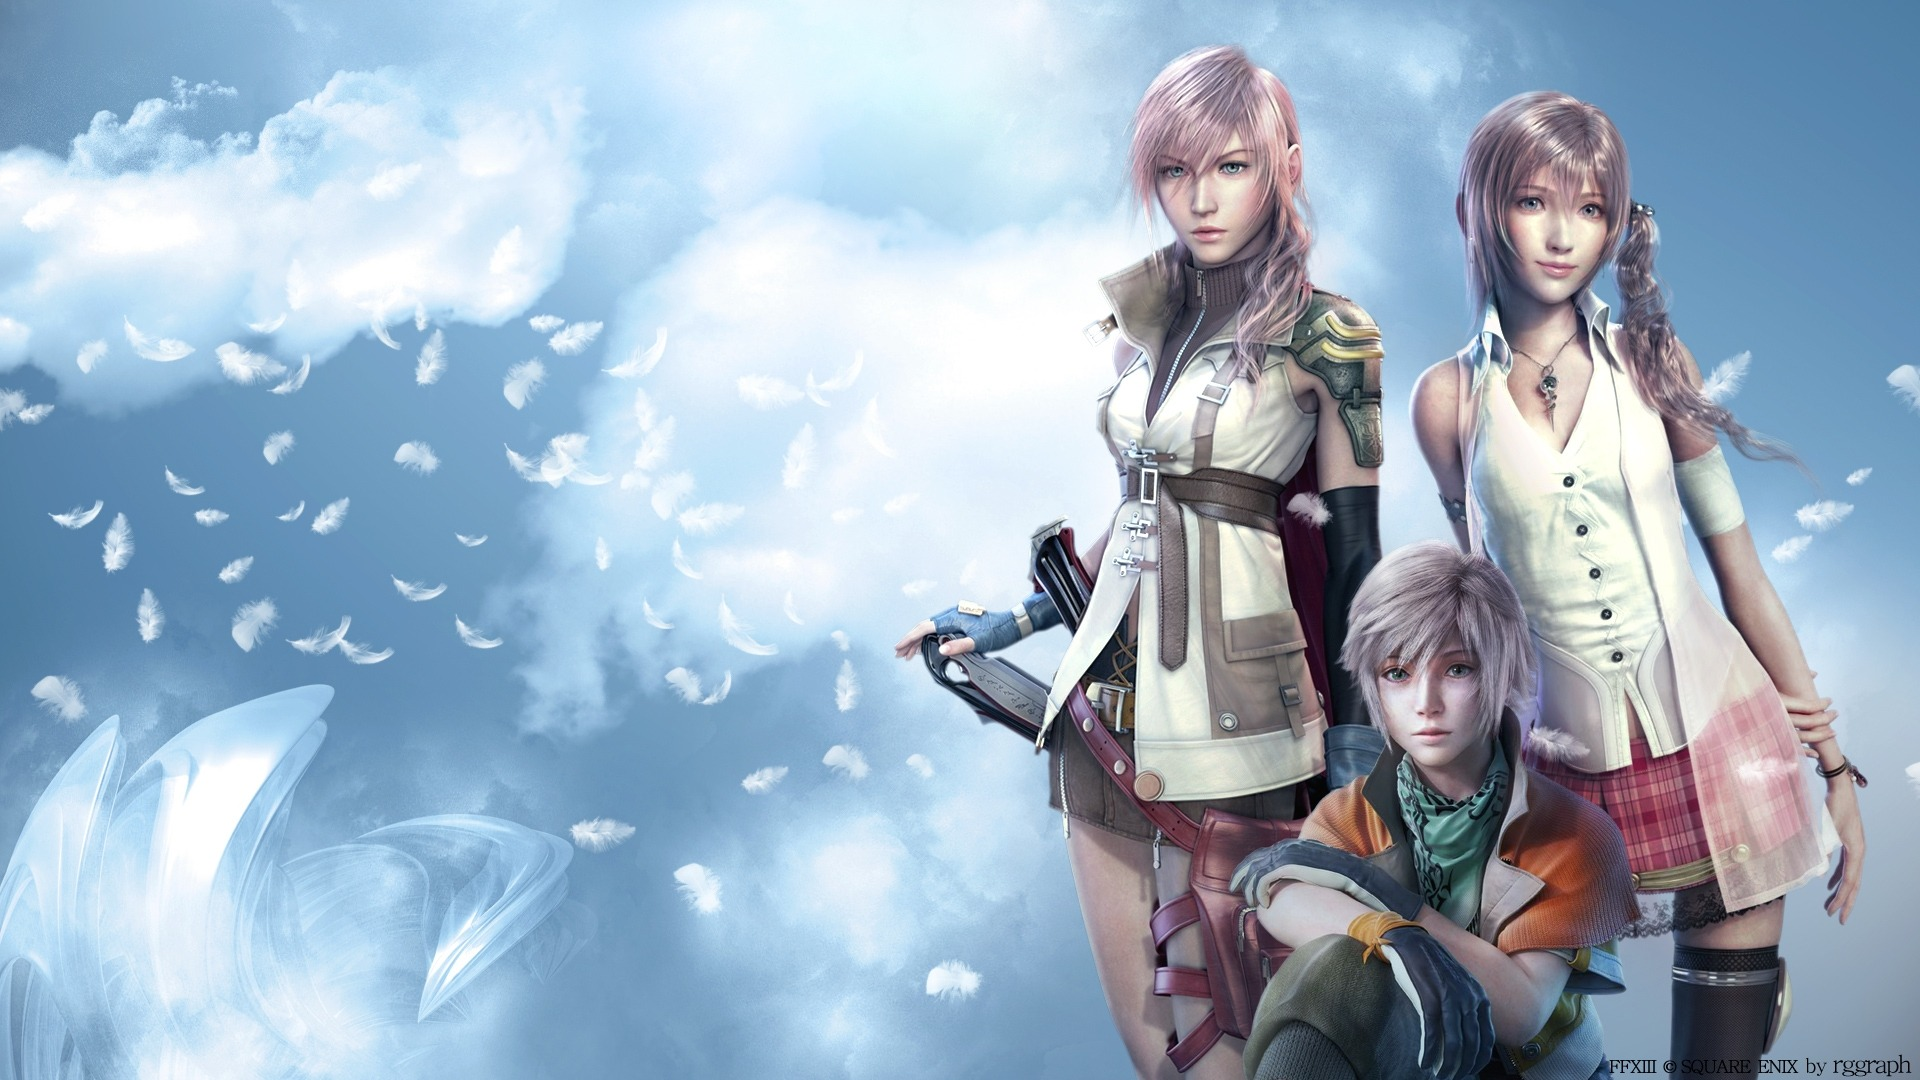 Download Free Final Fantasy Wallpapers 15 Beautiful: Final Fantasy 13 Wallpapers HD